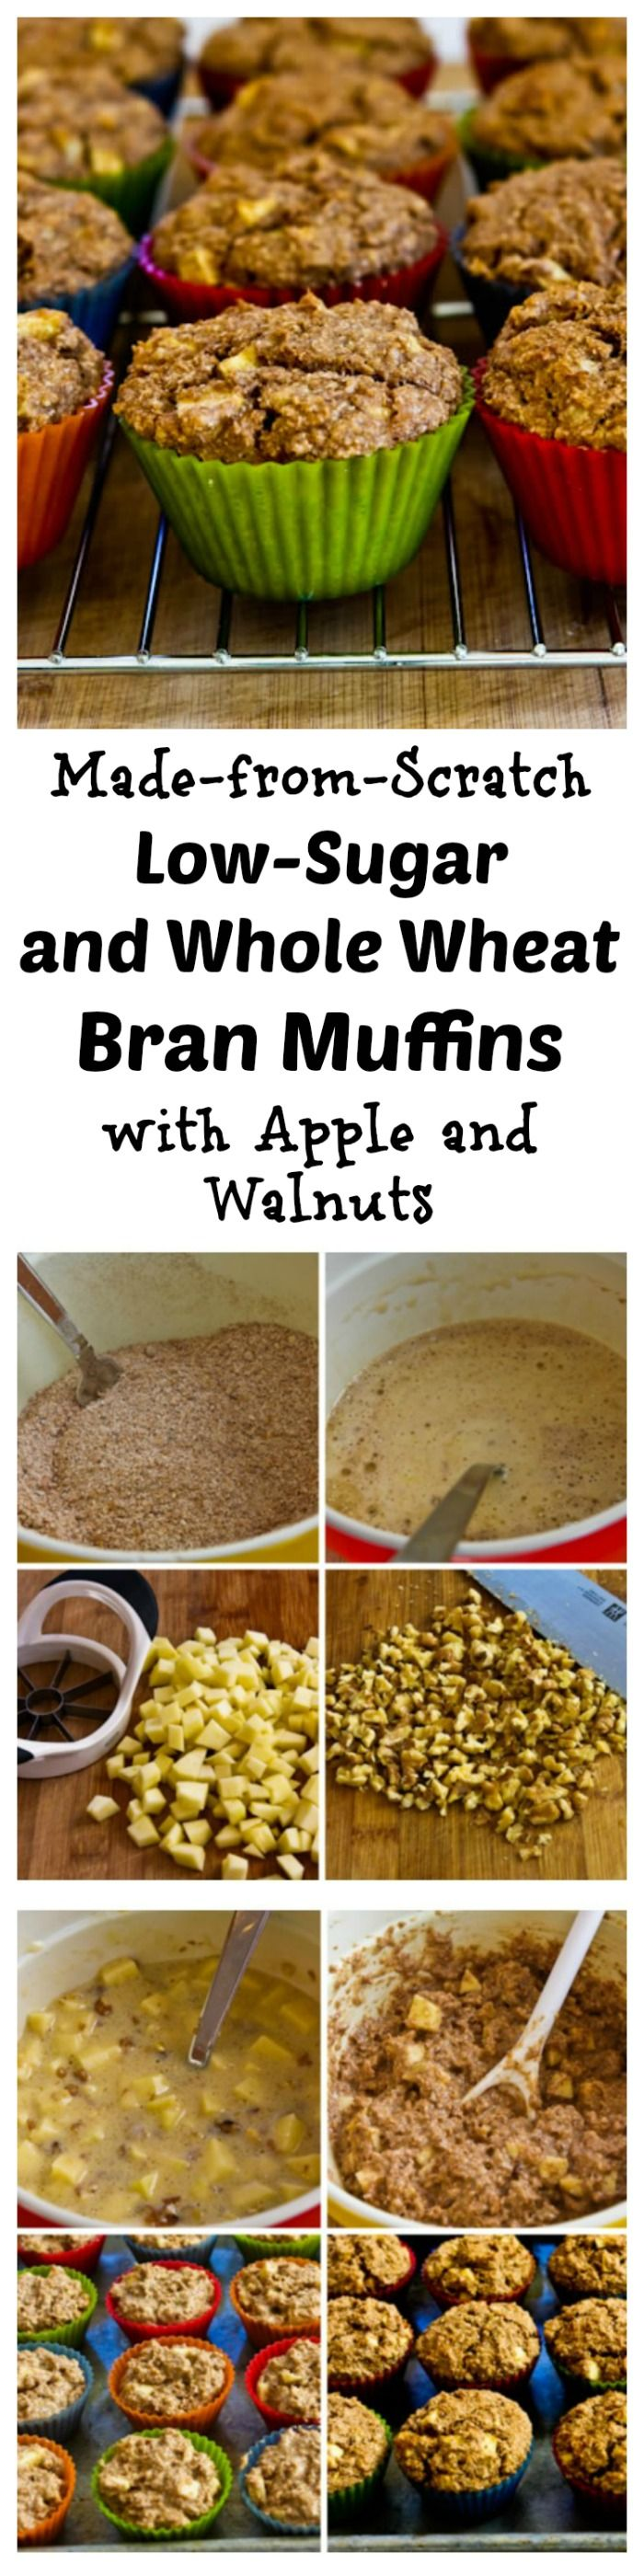 Made-from-Scratch Low-Sugar and Whole Wheat Bran Muffins with Apple and Walnuts.  Use your favorite sweetener in this deliciously healthy muffin recipe, perfect for #MothersDay brunch!  [from KalynsKitchen.com]